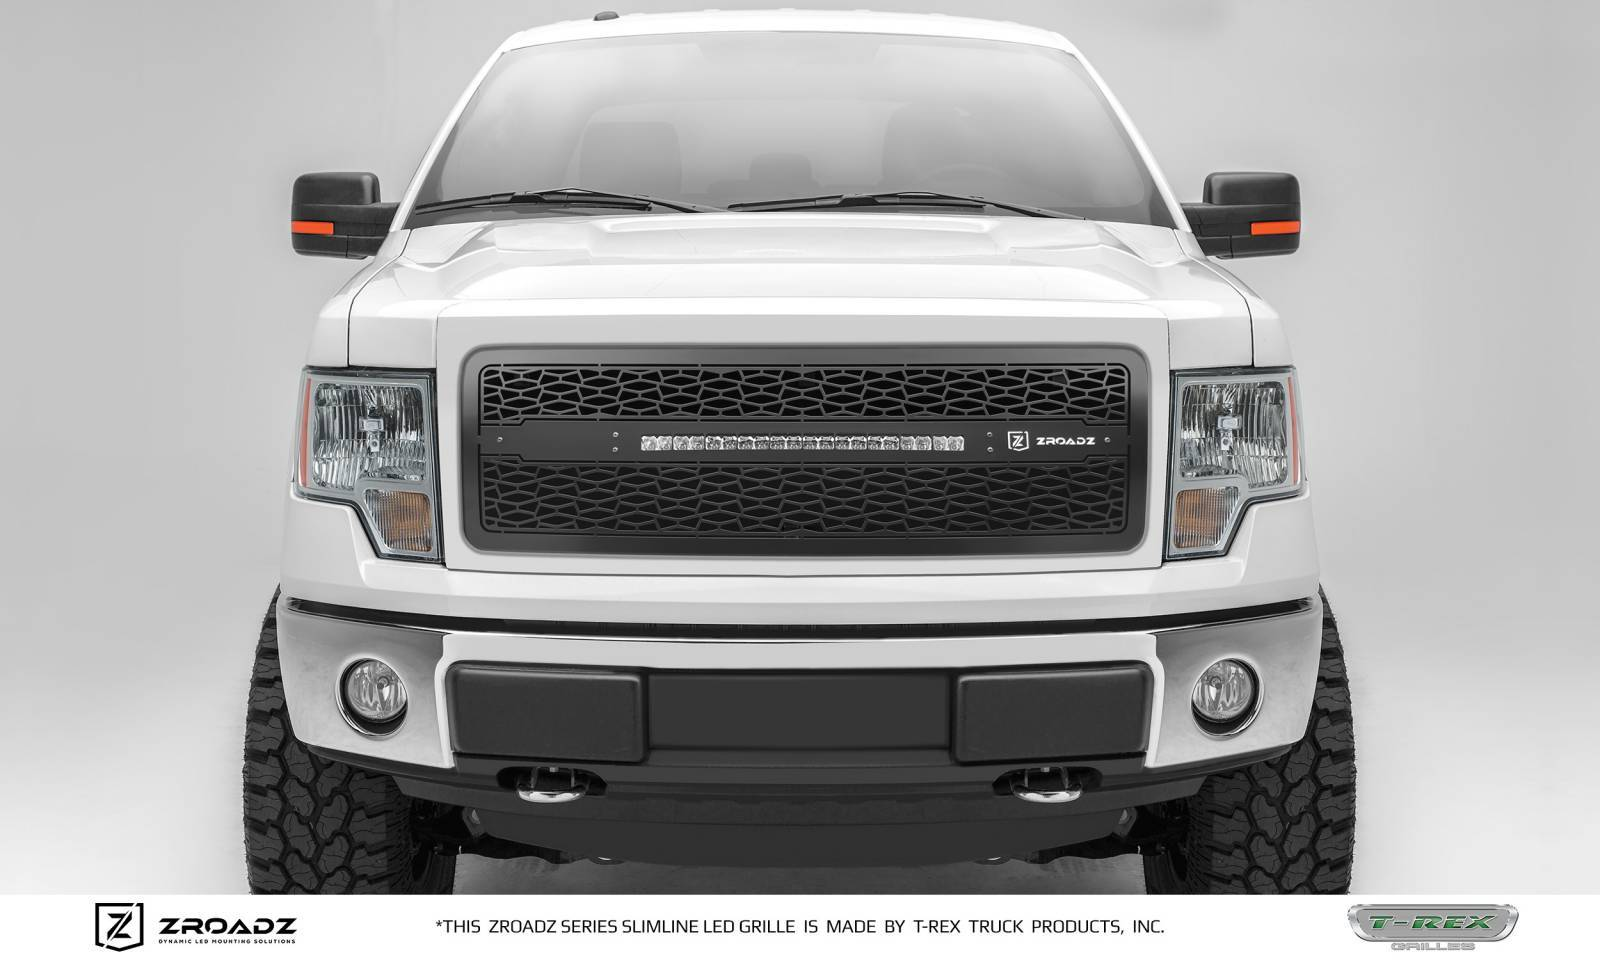 T-REX Grilles - 2009-2012 Ford F-150 Main Grille, Including (1) 20 Inch ZROADZ LED Straight Single Row Slim Light Bar - Z315681